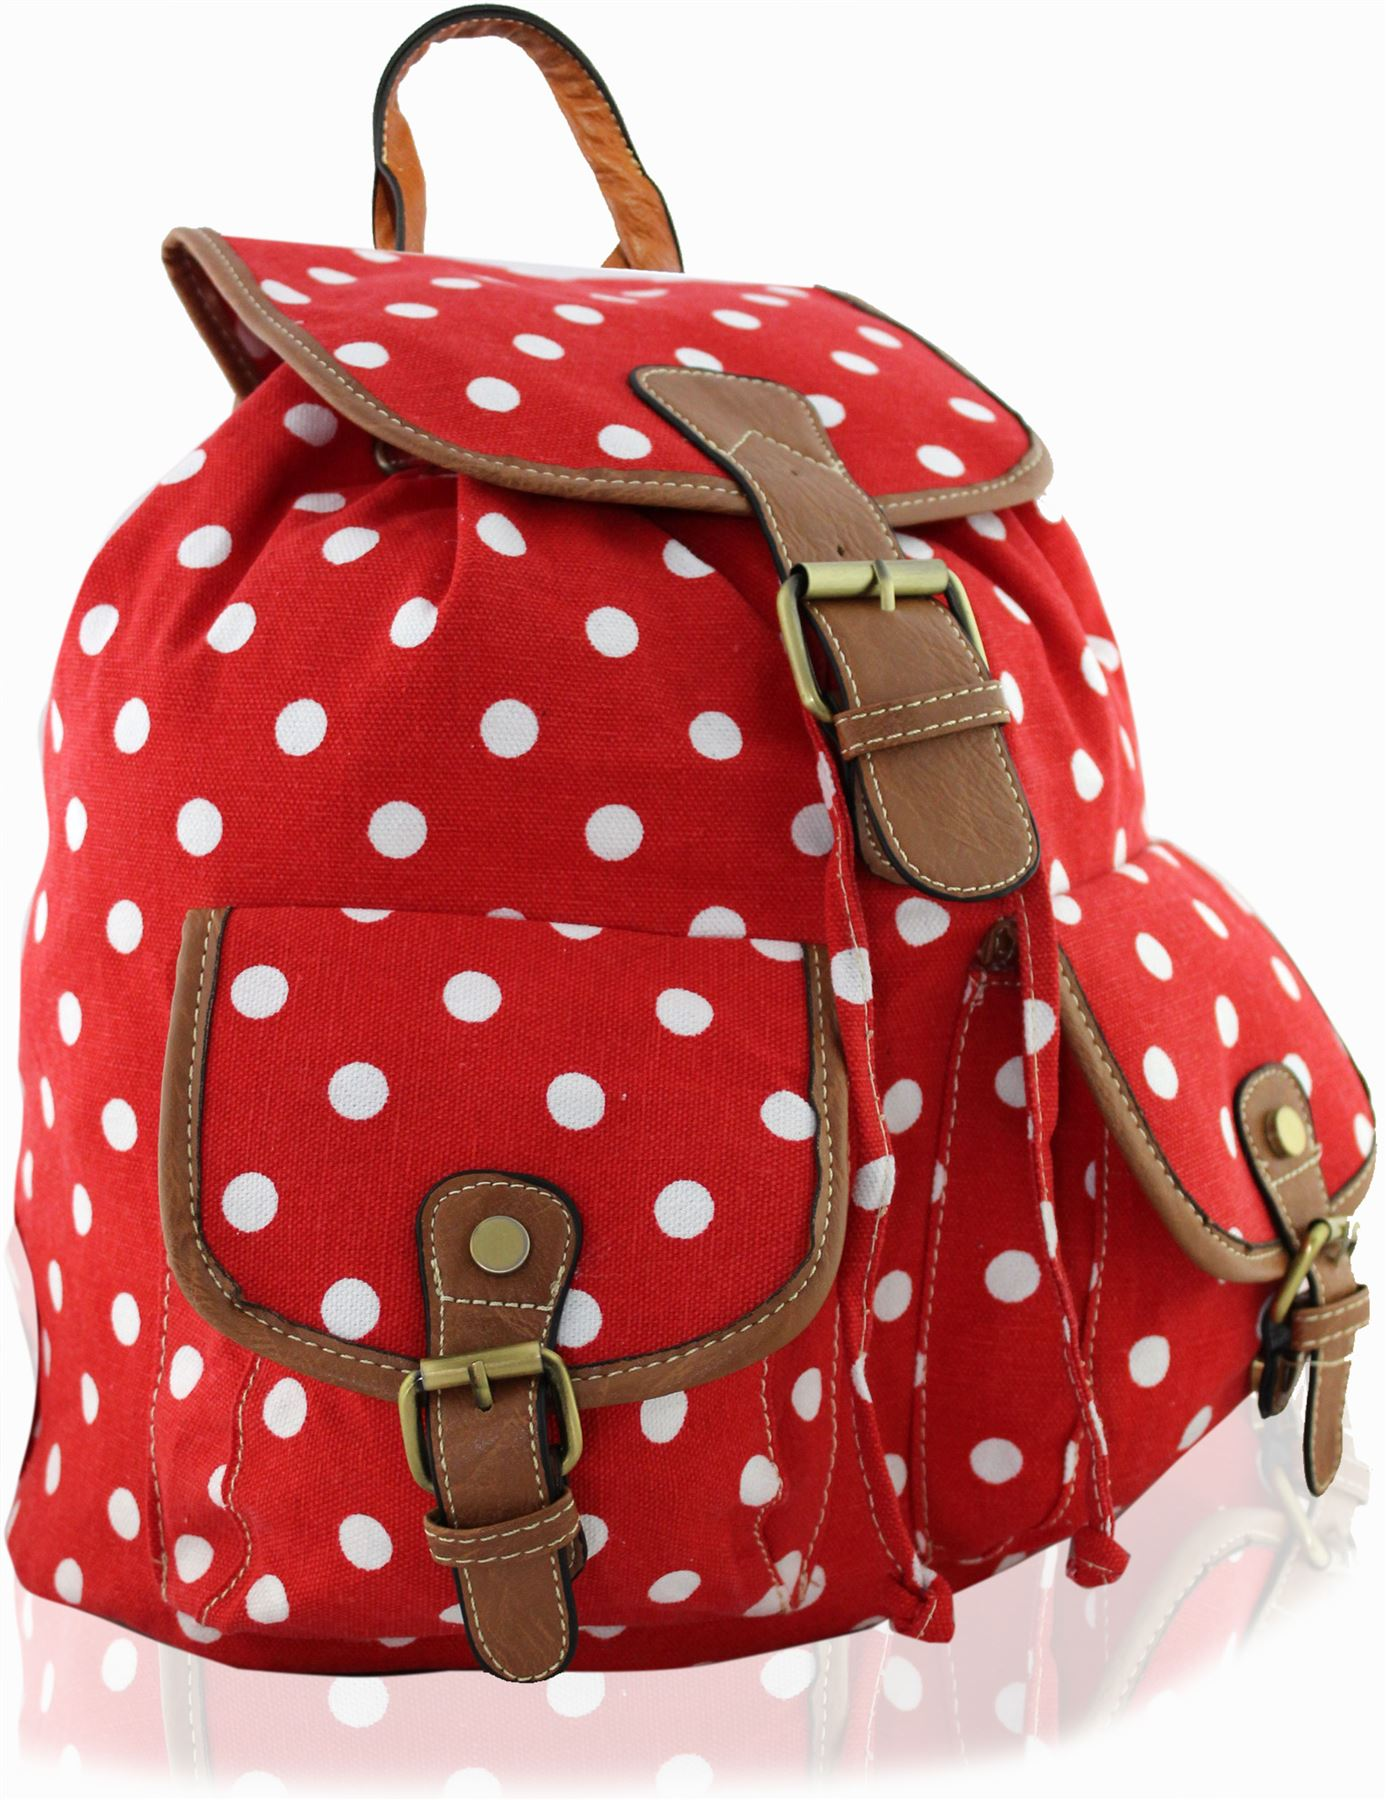 Disney Girls' Minnie Mouse Polka Dot 5 Pc Set Backpack, Pink, One Size. This backpack set featuring Minnie mouse on a fun polka dot background comes with many of the essentials needed for school. With a backpack, lunch kit, drawstring bag, zip pouch, and water bottle, your little one will be ready to go to school in style. more.